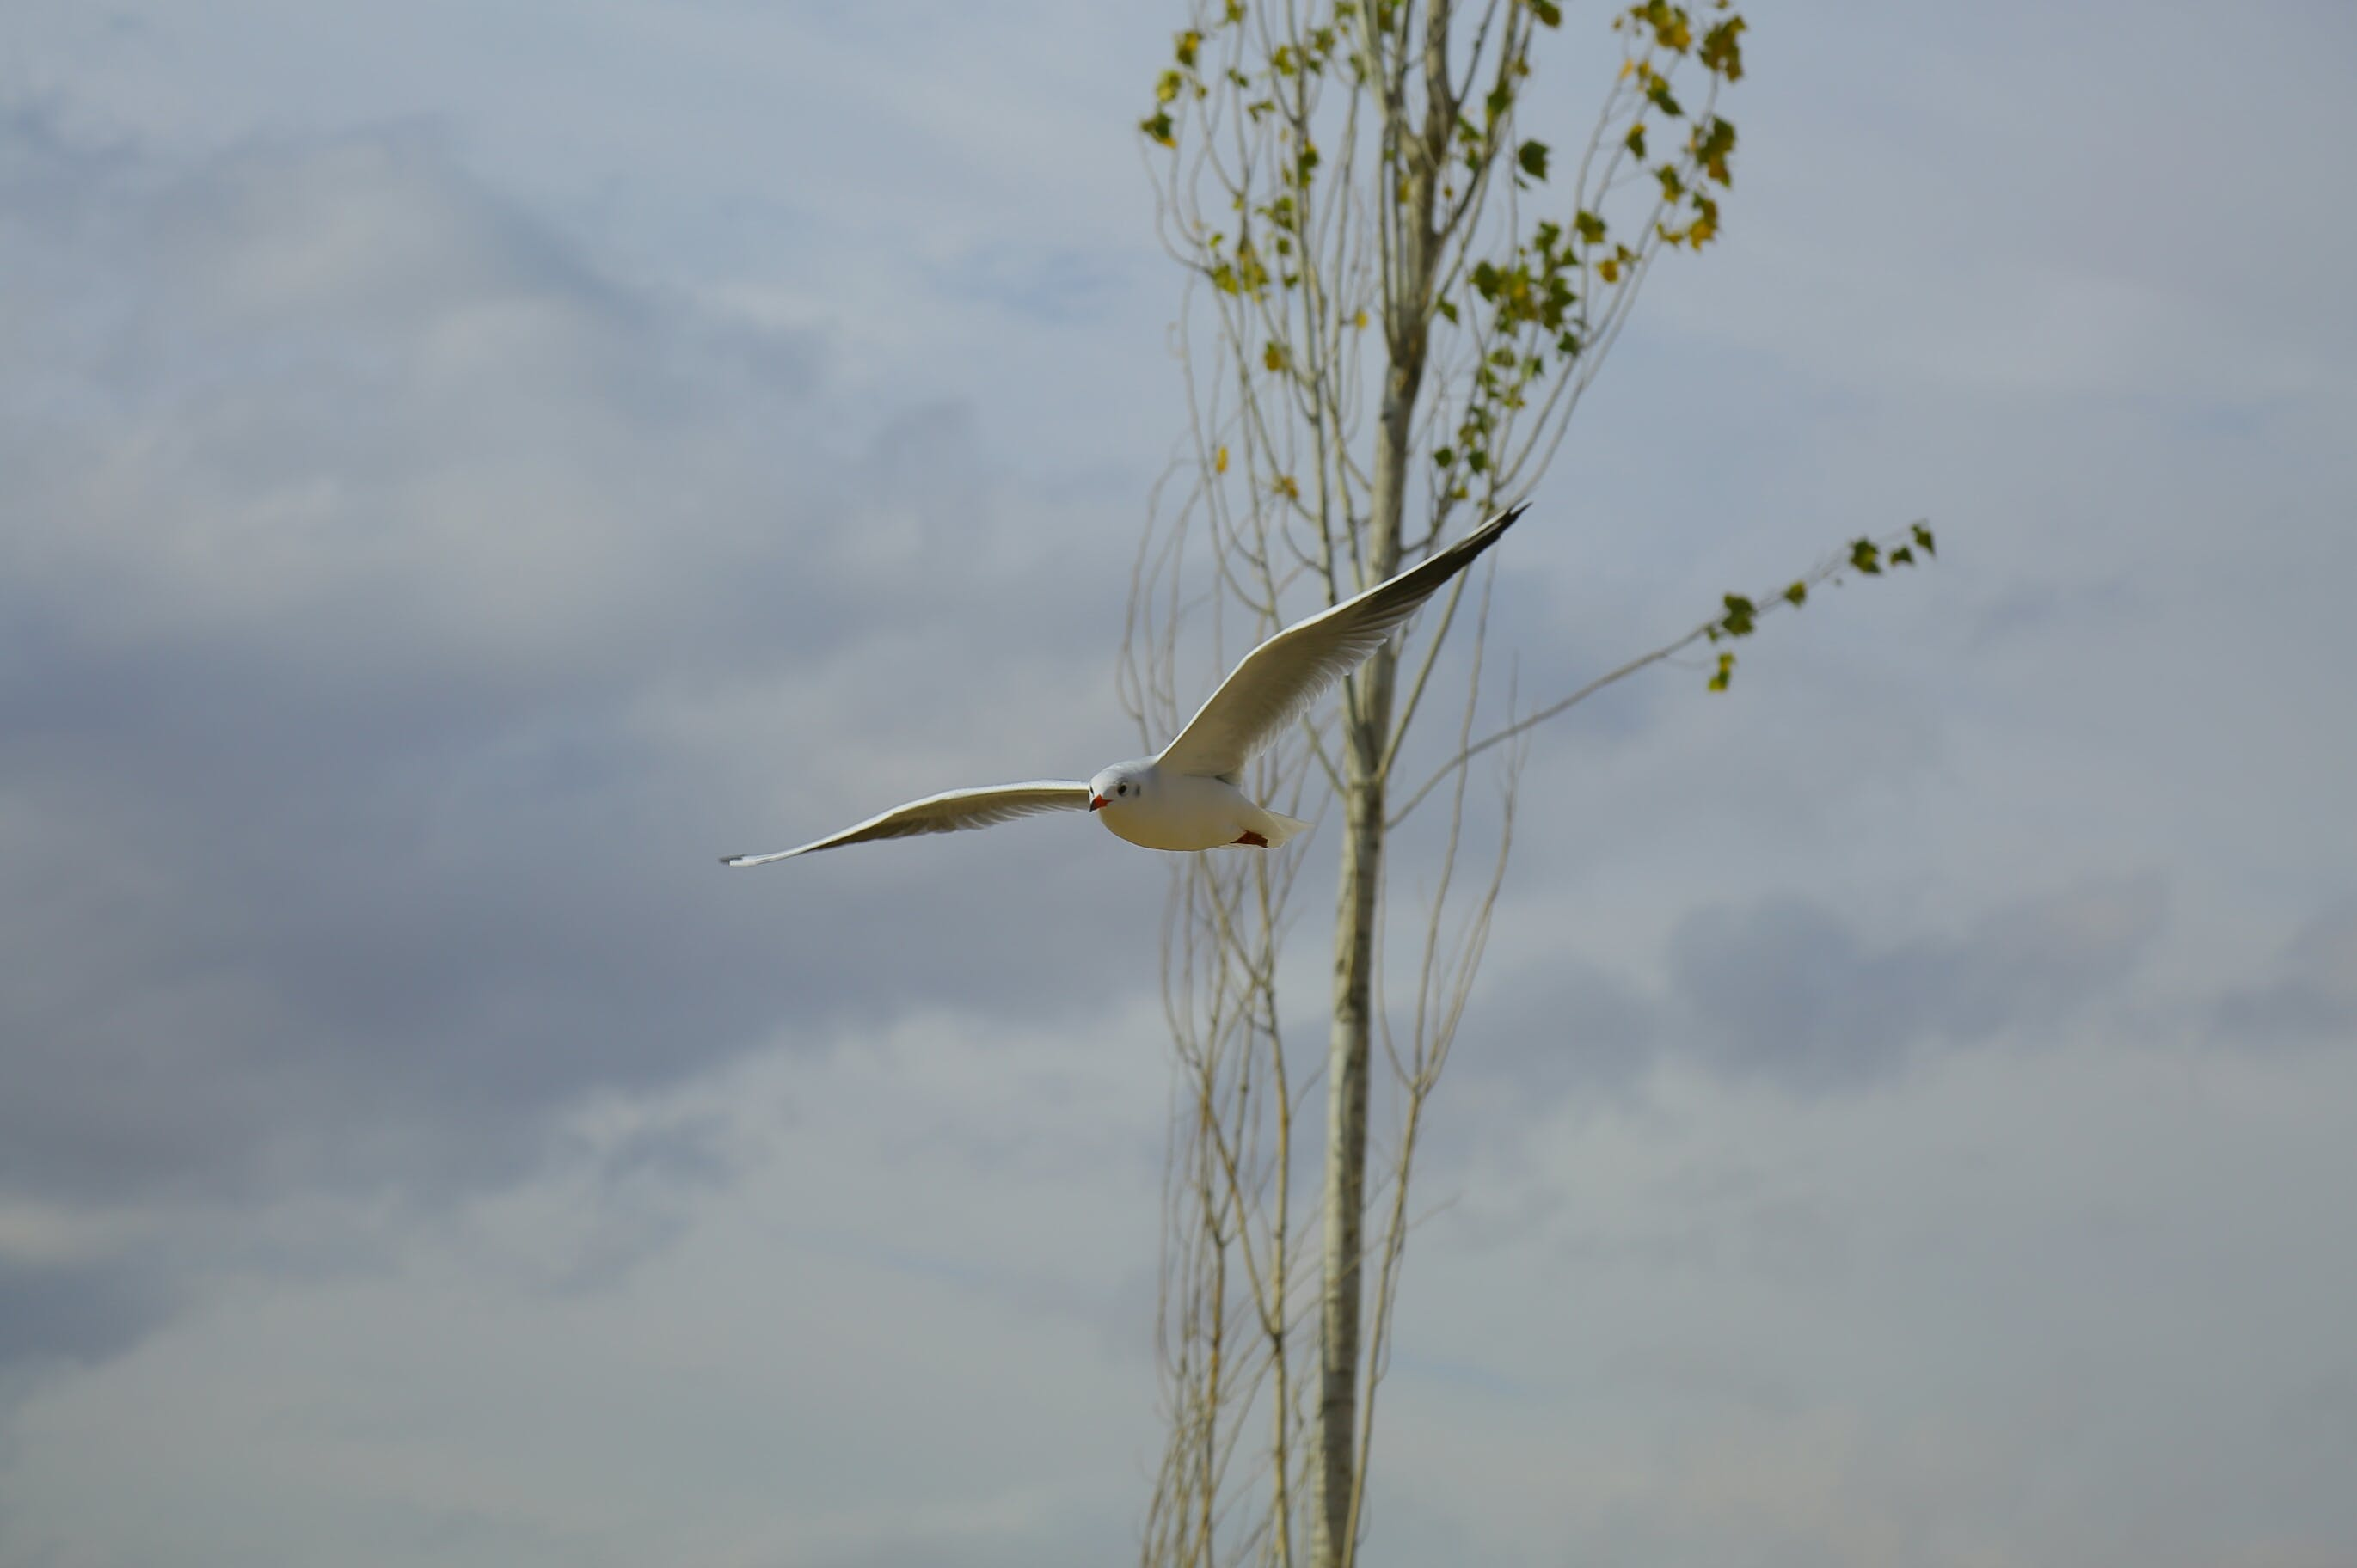 White Feathered Bird on Mid Air